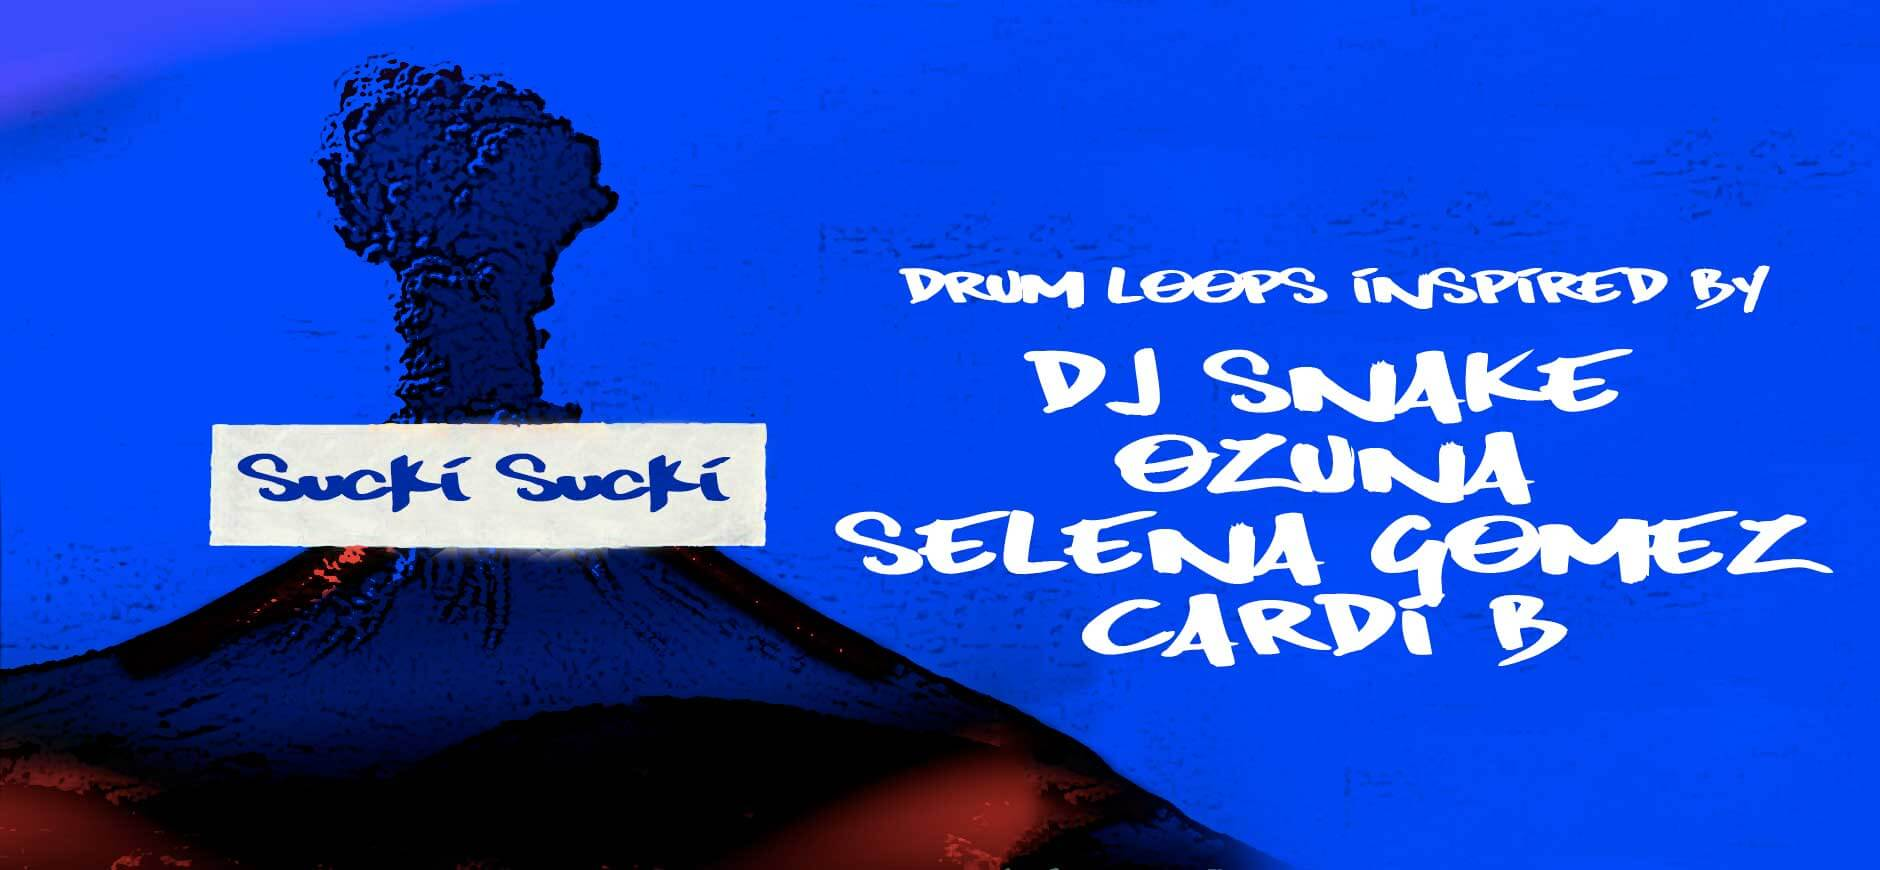 Taki Taki Drum Loops Kit Inspired by DJ Snake ft. Selena Gomez, Ozuna, & Cardi B